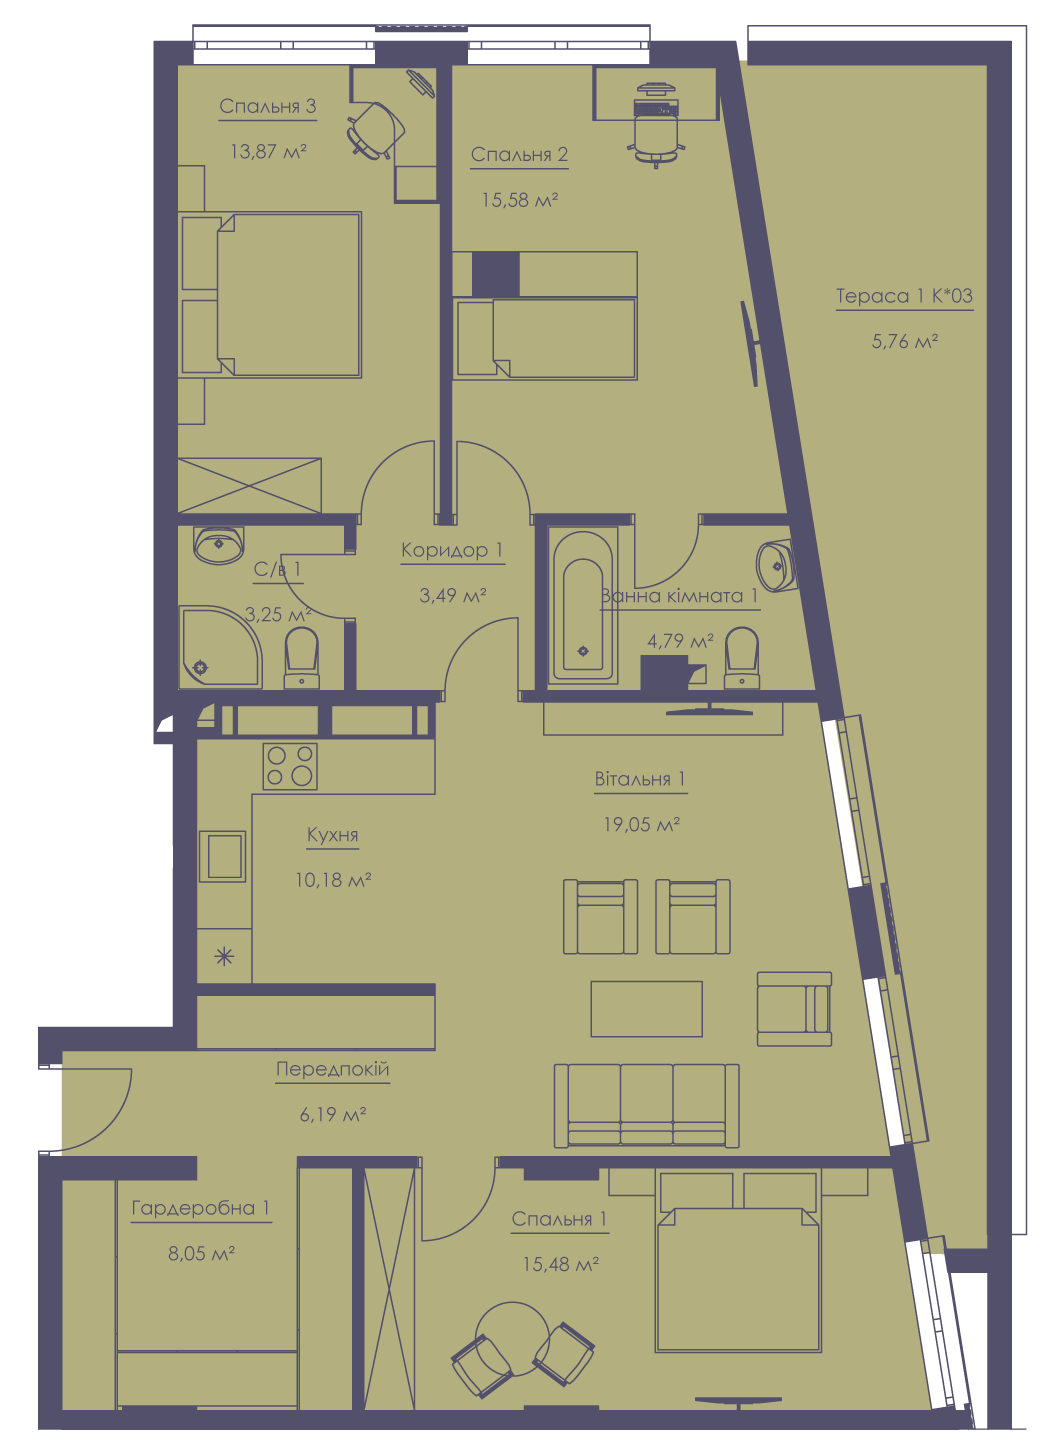 Apartment layout KV_78_4g_1_1_11-1